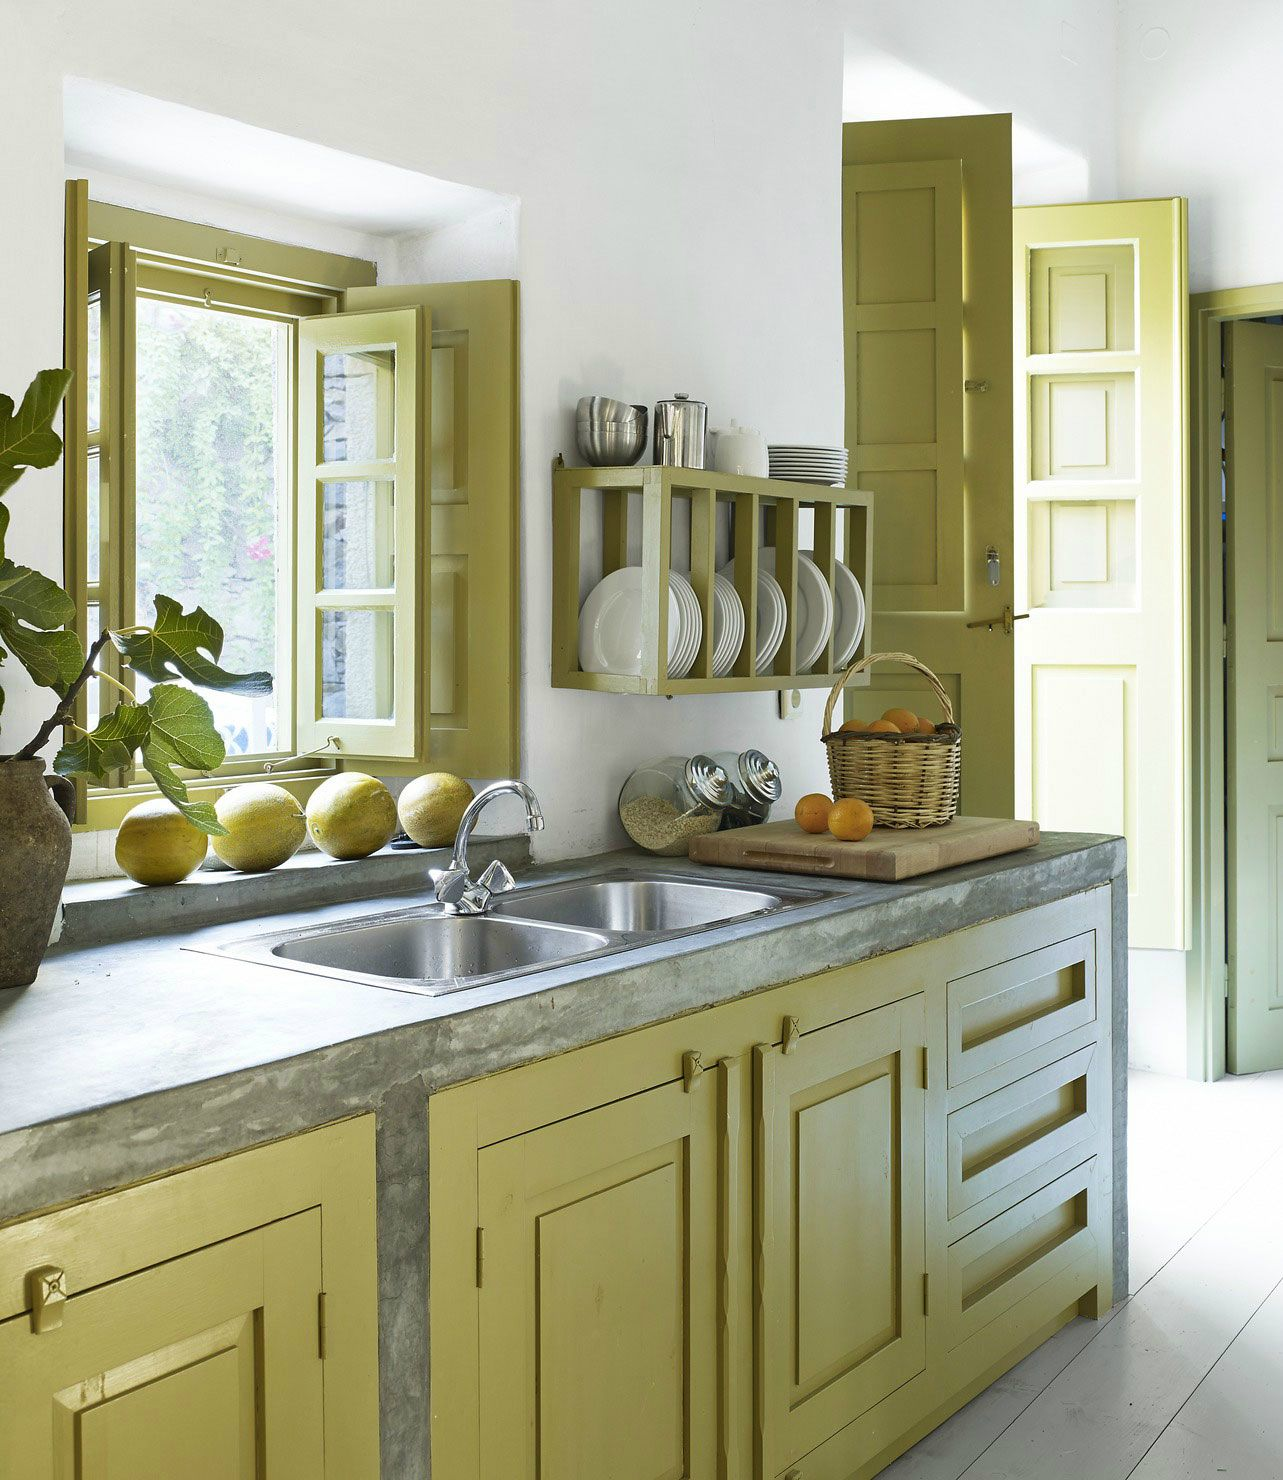 Elle decor predicts the color trends for 2017 yellow for Home kitchen design